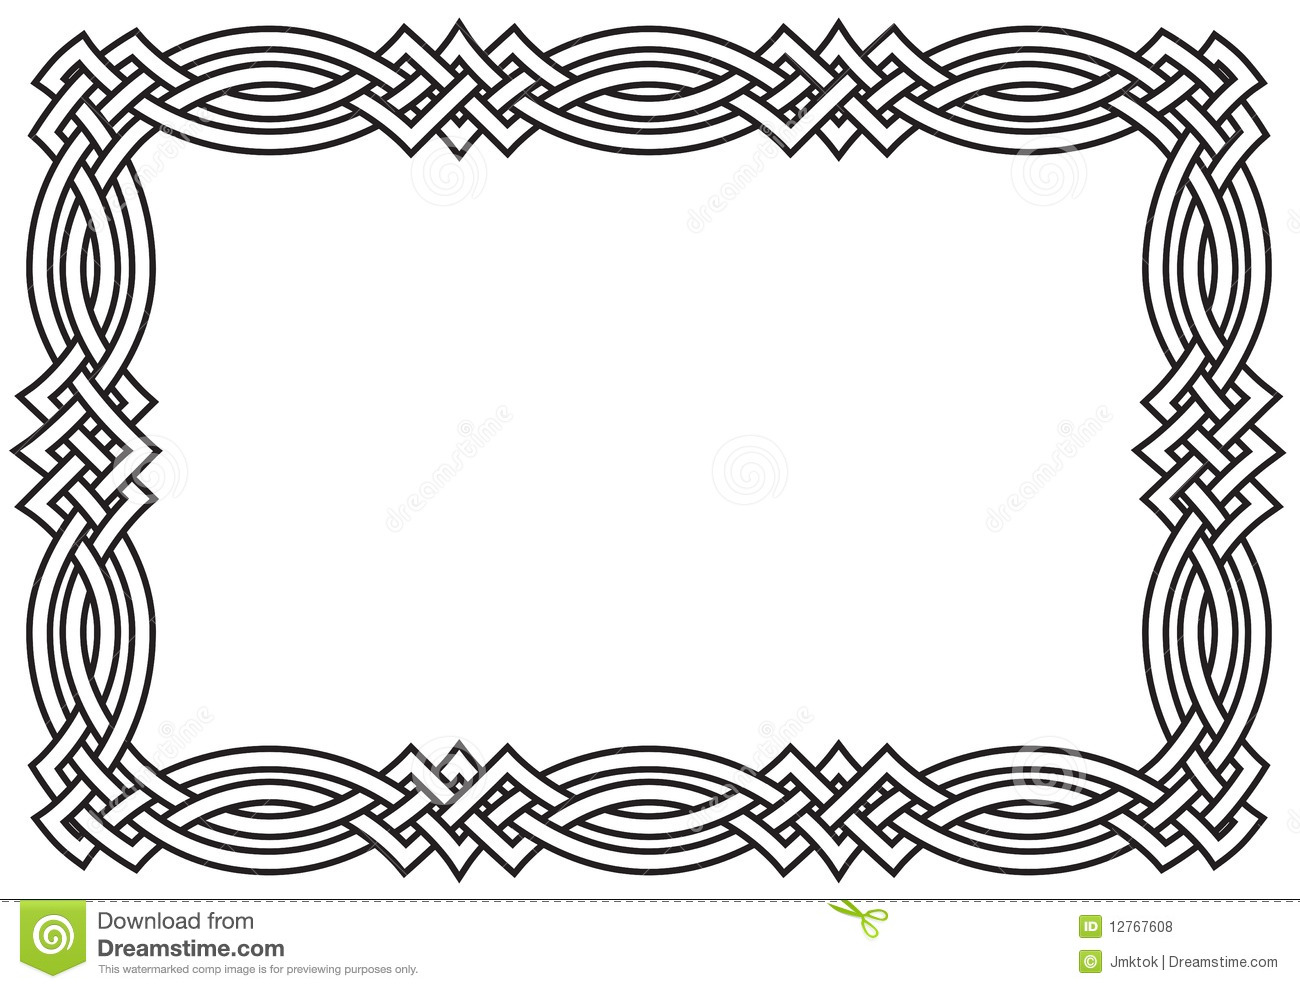 celtic knot border royalty free stock photos image 12767608